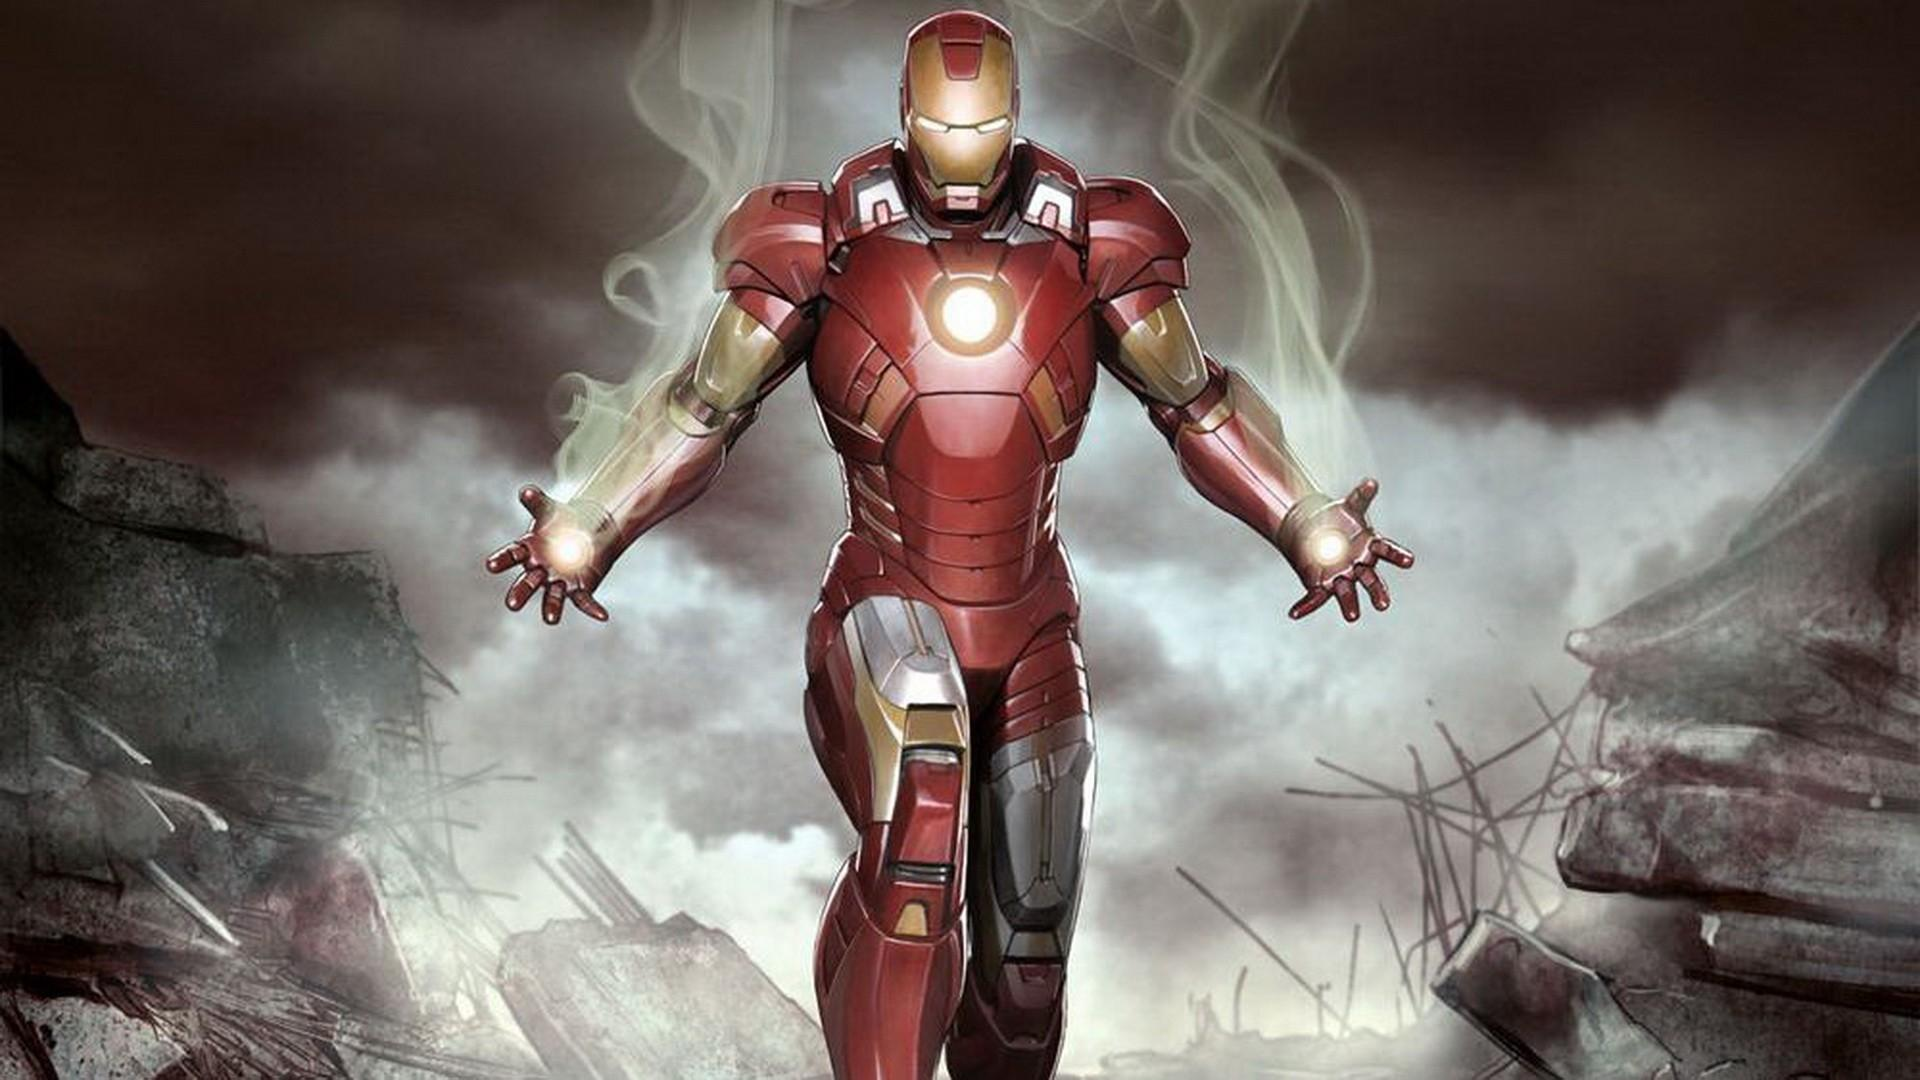 Must see Wallpaper Marvel Full Hd - Marvel-HD-Wallpapers-1080p-003  Picture_10781.jpg